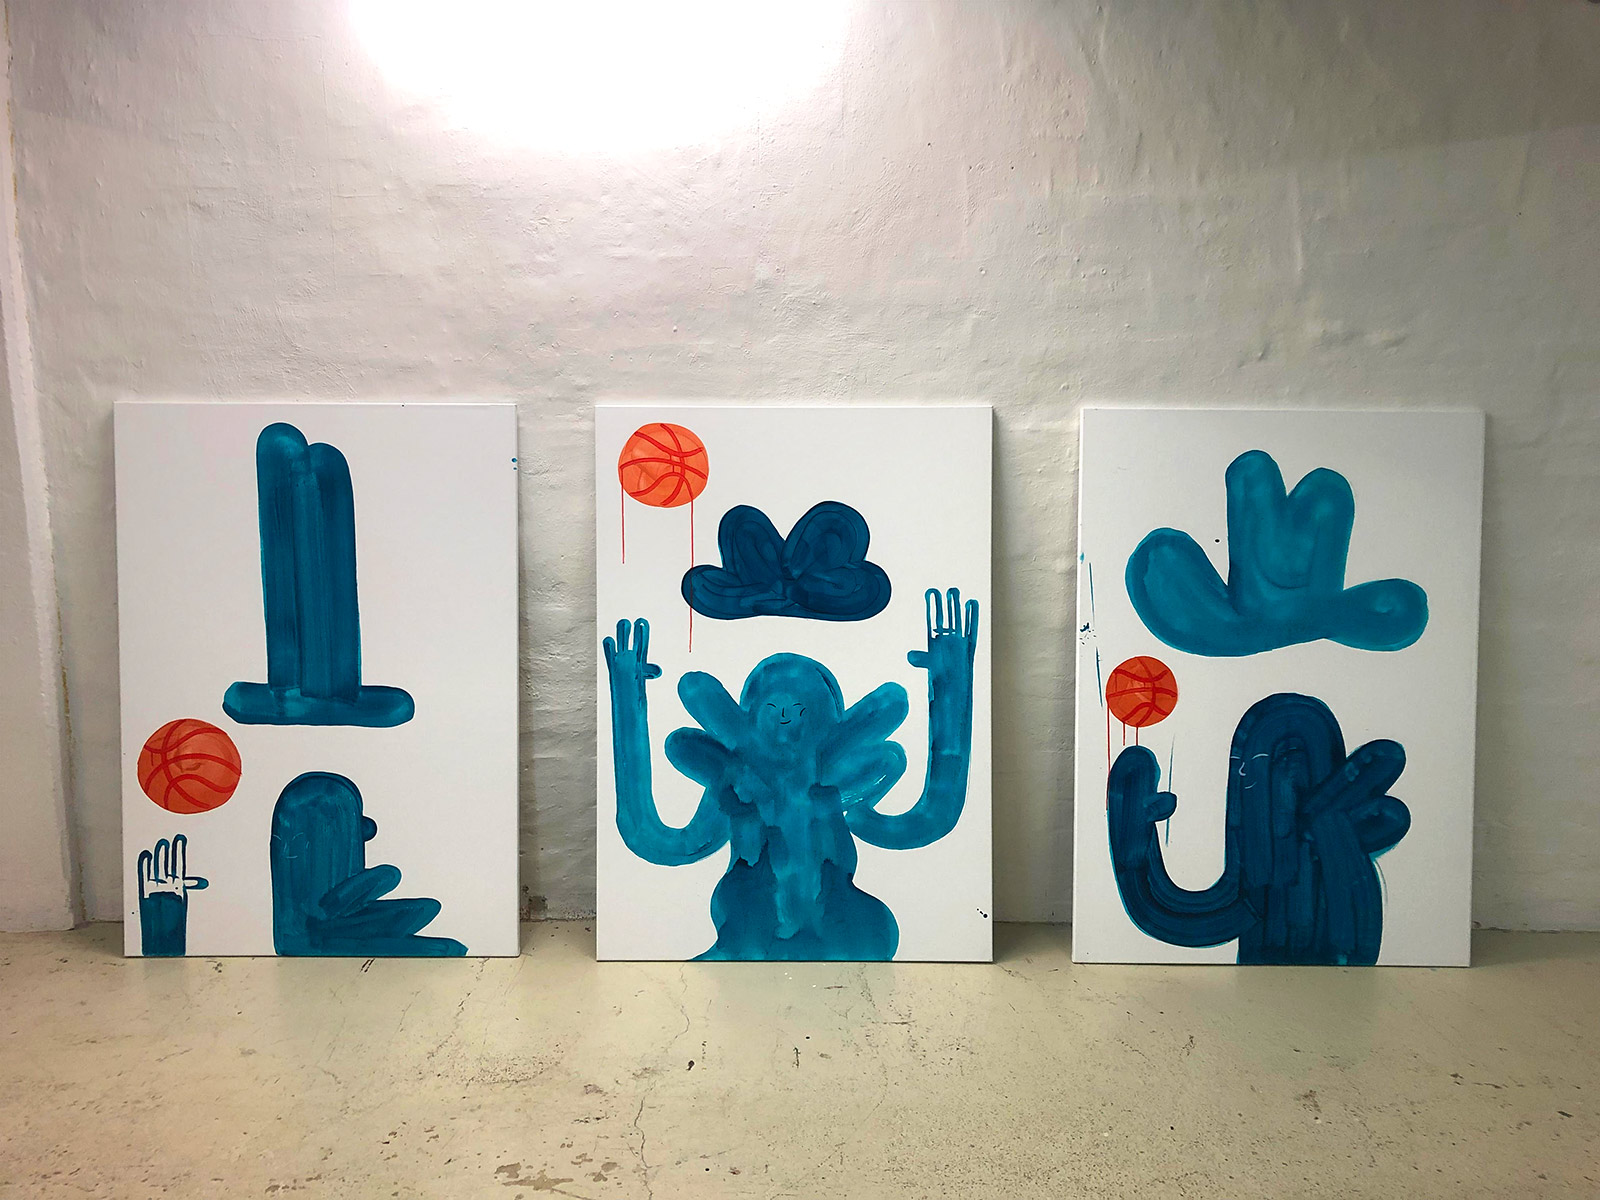 paintings, family-friendly, illustrative, minimalistic, pop, bodies, everyday life, movement, people, sport, blue, orange, turquoise, white, acrylic, flax-canvas, abstract-forms, amusing, contemporary-art, danish, decorative, design, hats, interior, interior-design, modern, modern-art, nordic, pop-art, scandinavien, street-art, Buy original high quality art. Paintings, drawings, limited edition prints & posters by talented artists.